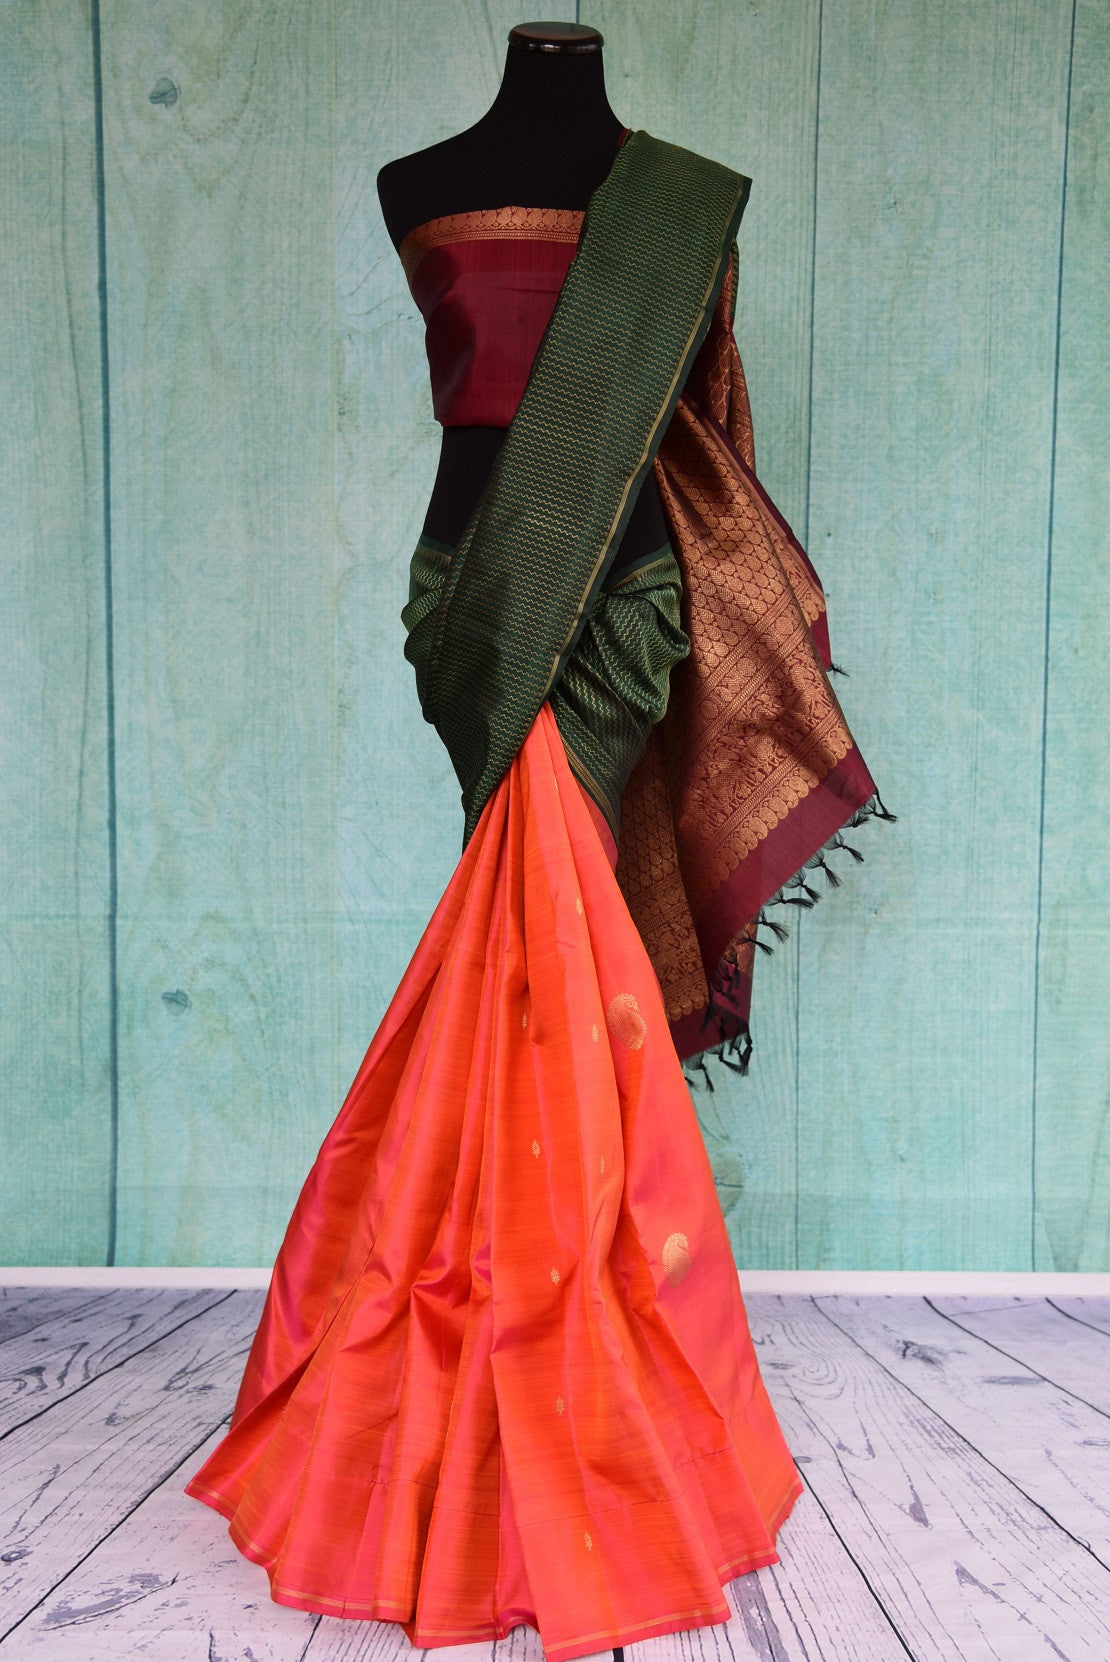 90D410 Orange and green kanjivaram saree with a maroon blouse and pallu. Buy this eye-catching, traditional saree online at our Indian wear store in USA - Pure Elegance.